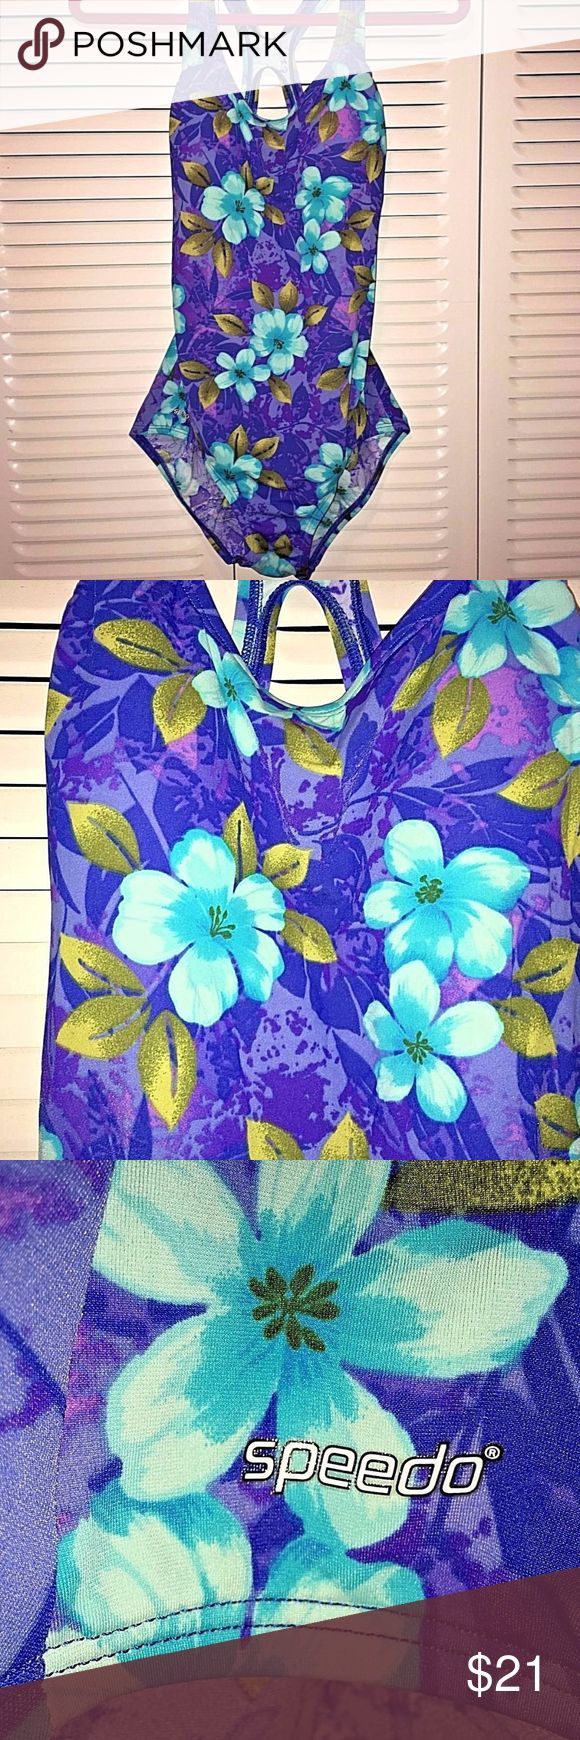 """Speedo One-piece Swimsuit Blue Purple Floral Print Racer-back cut straps on upper back. It is fully lined. Measurements: armpit to armpit 16"""". Length from top of strap to bottom hem: 29"""". Thank you for checking out my Closet and please feel free to ask any questions. I consider all reasonable offers Speedo Swim One Pieces"""